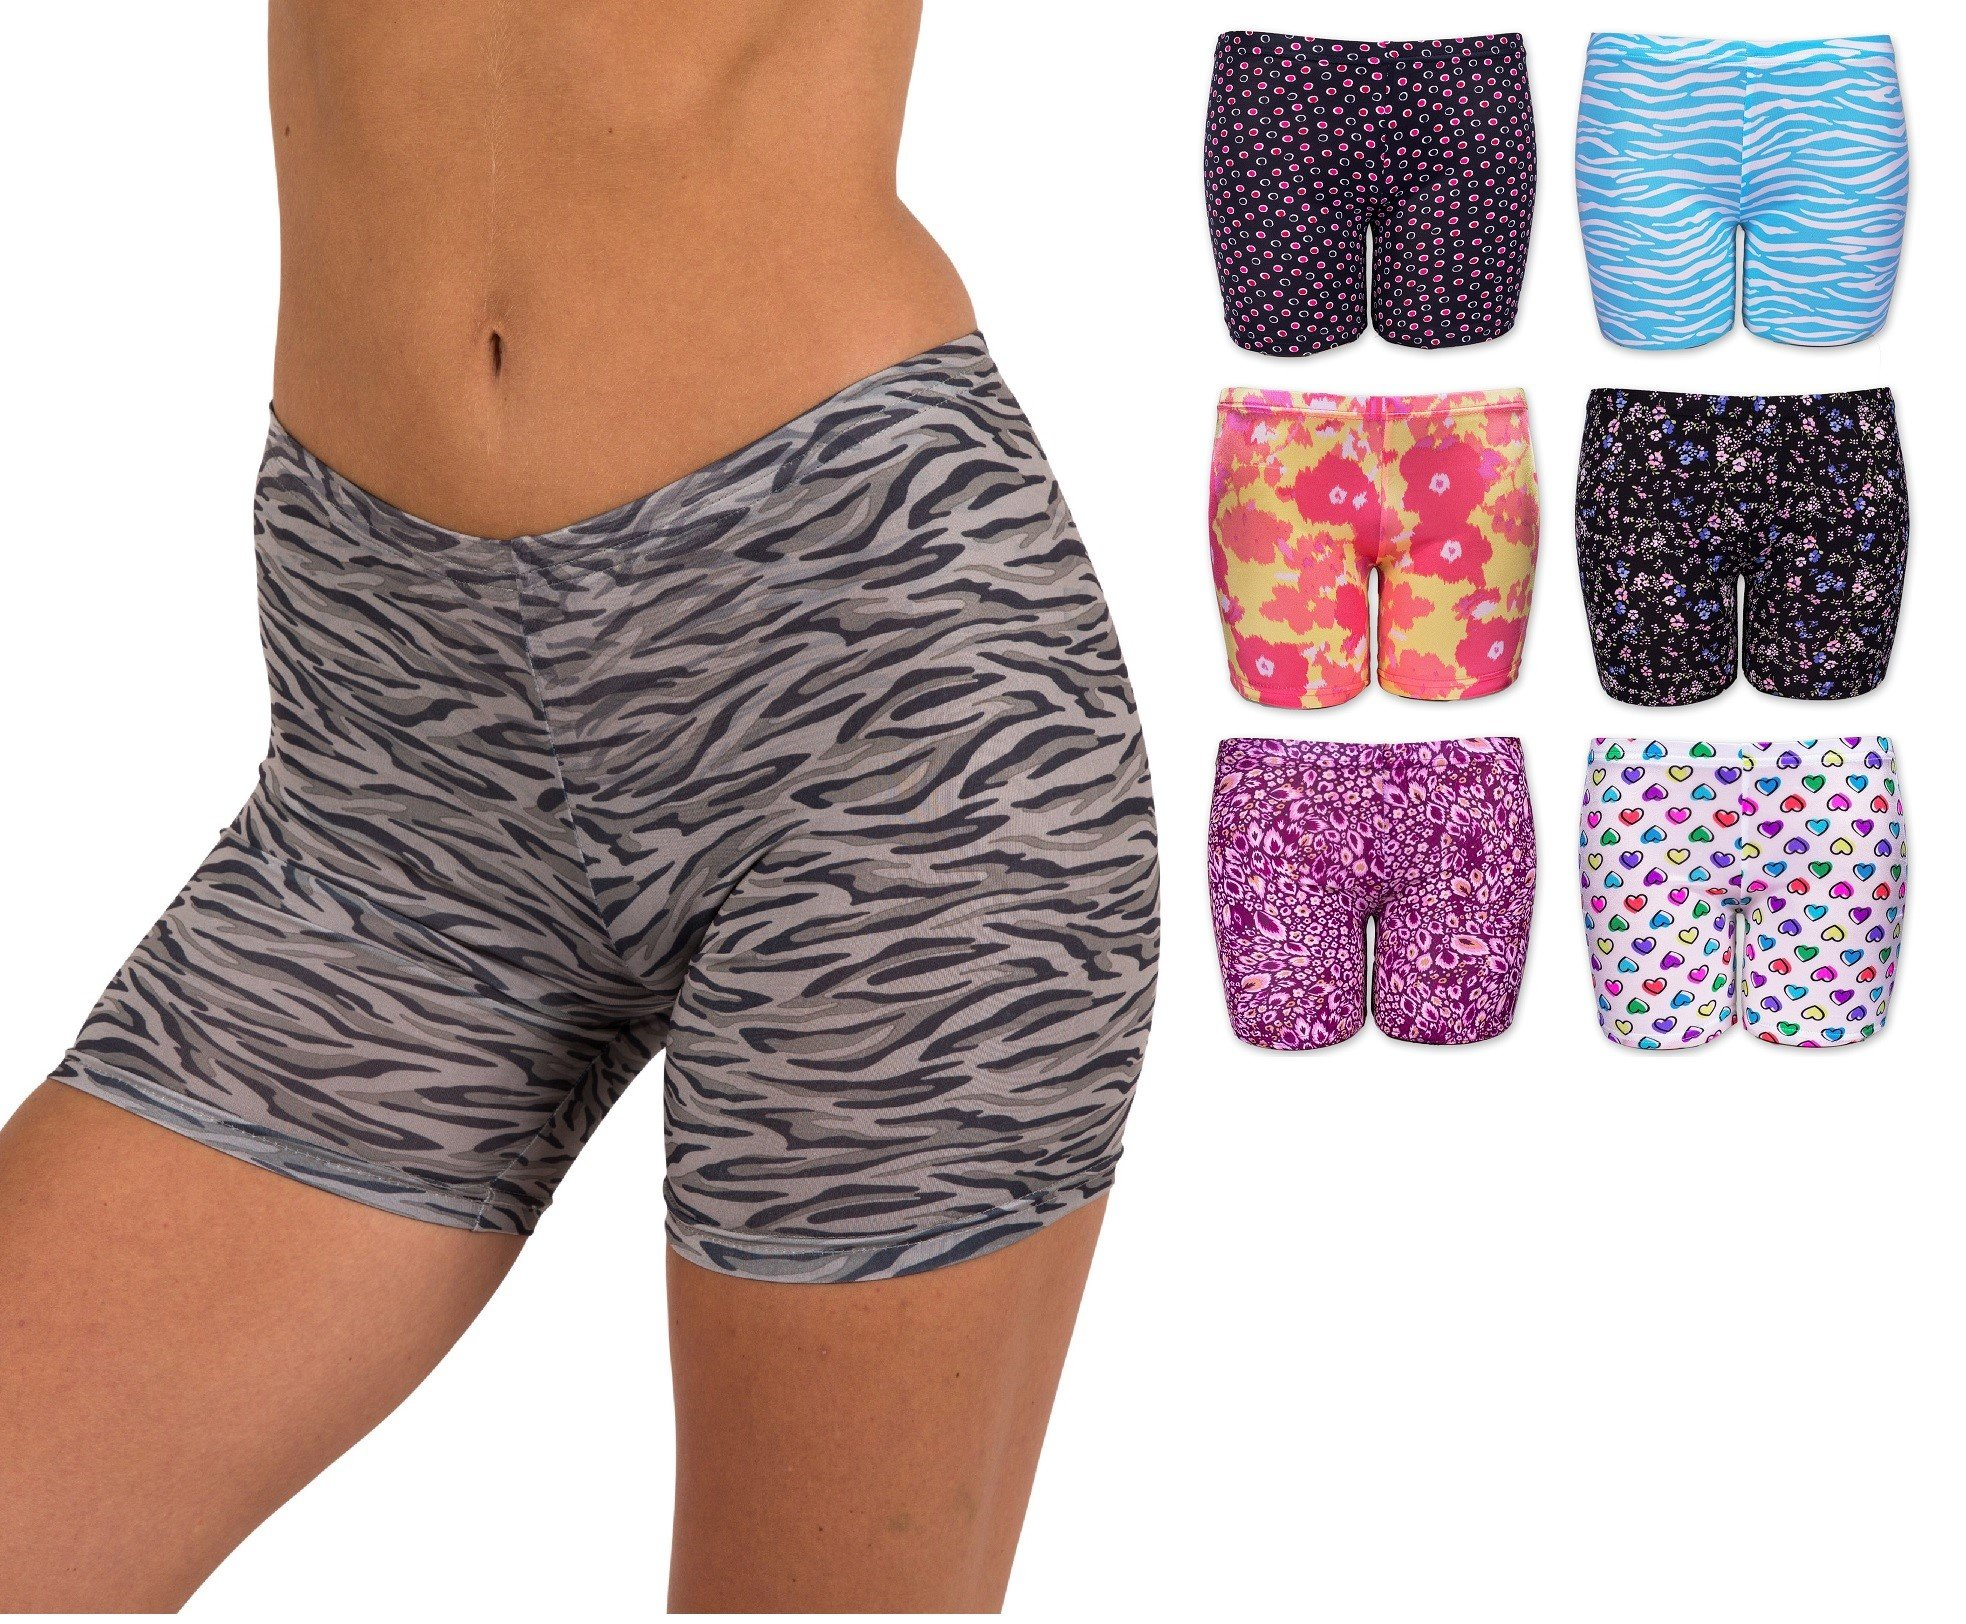 Sexy Basics Women's 6 Pack Micro Fiber Spandex Mini Yoga Bike Active Undershort (2XL/9, 6 Pair - Silky Smooth Assorted Prints)